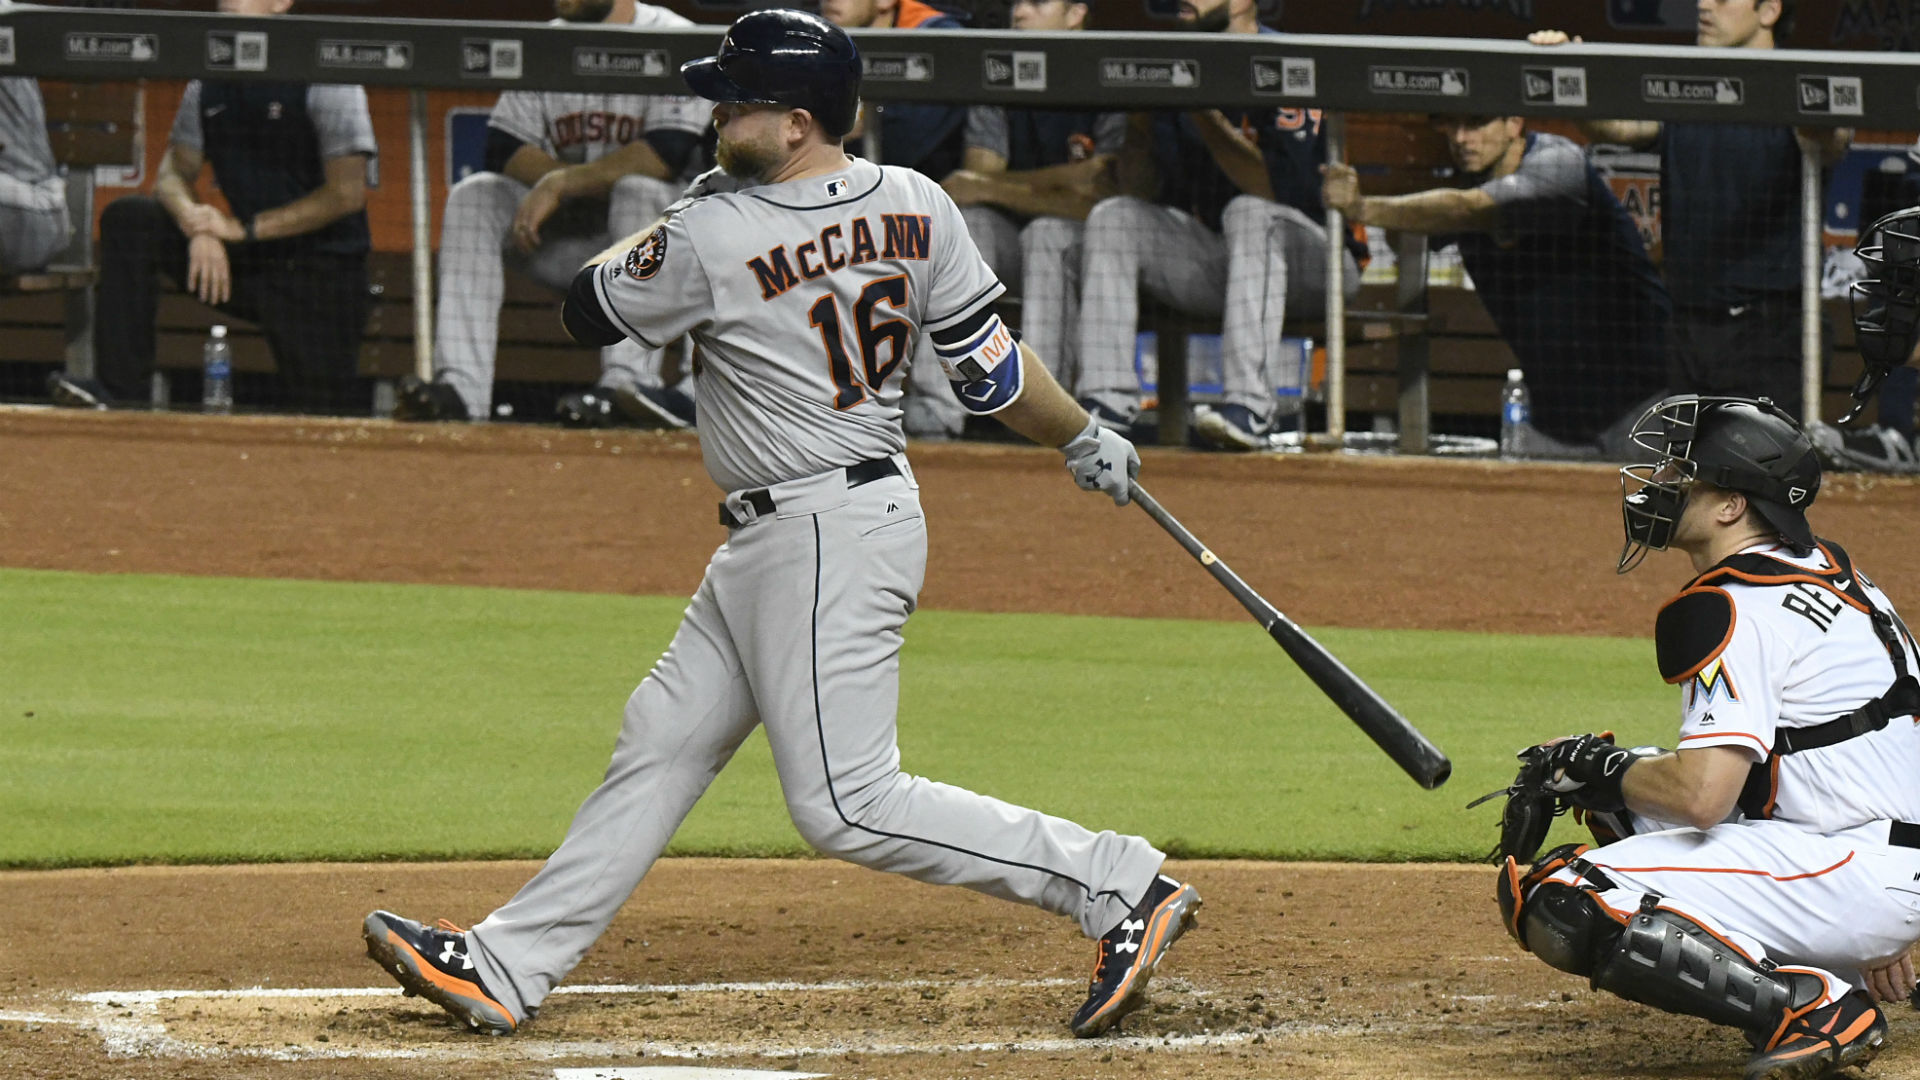 Astros place catcher McCann on concussion DL